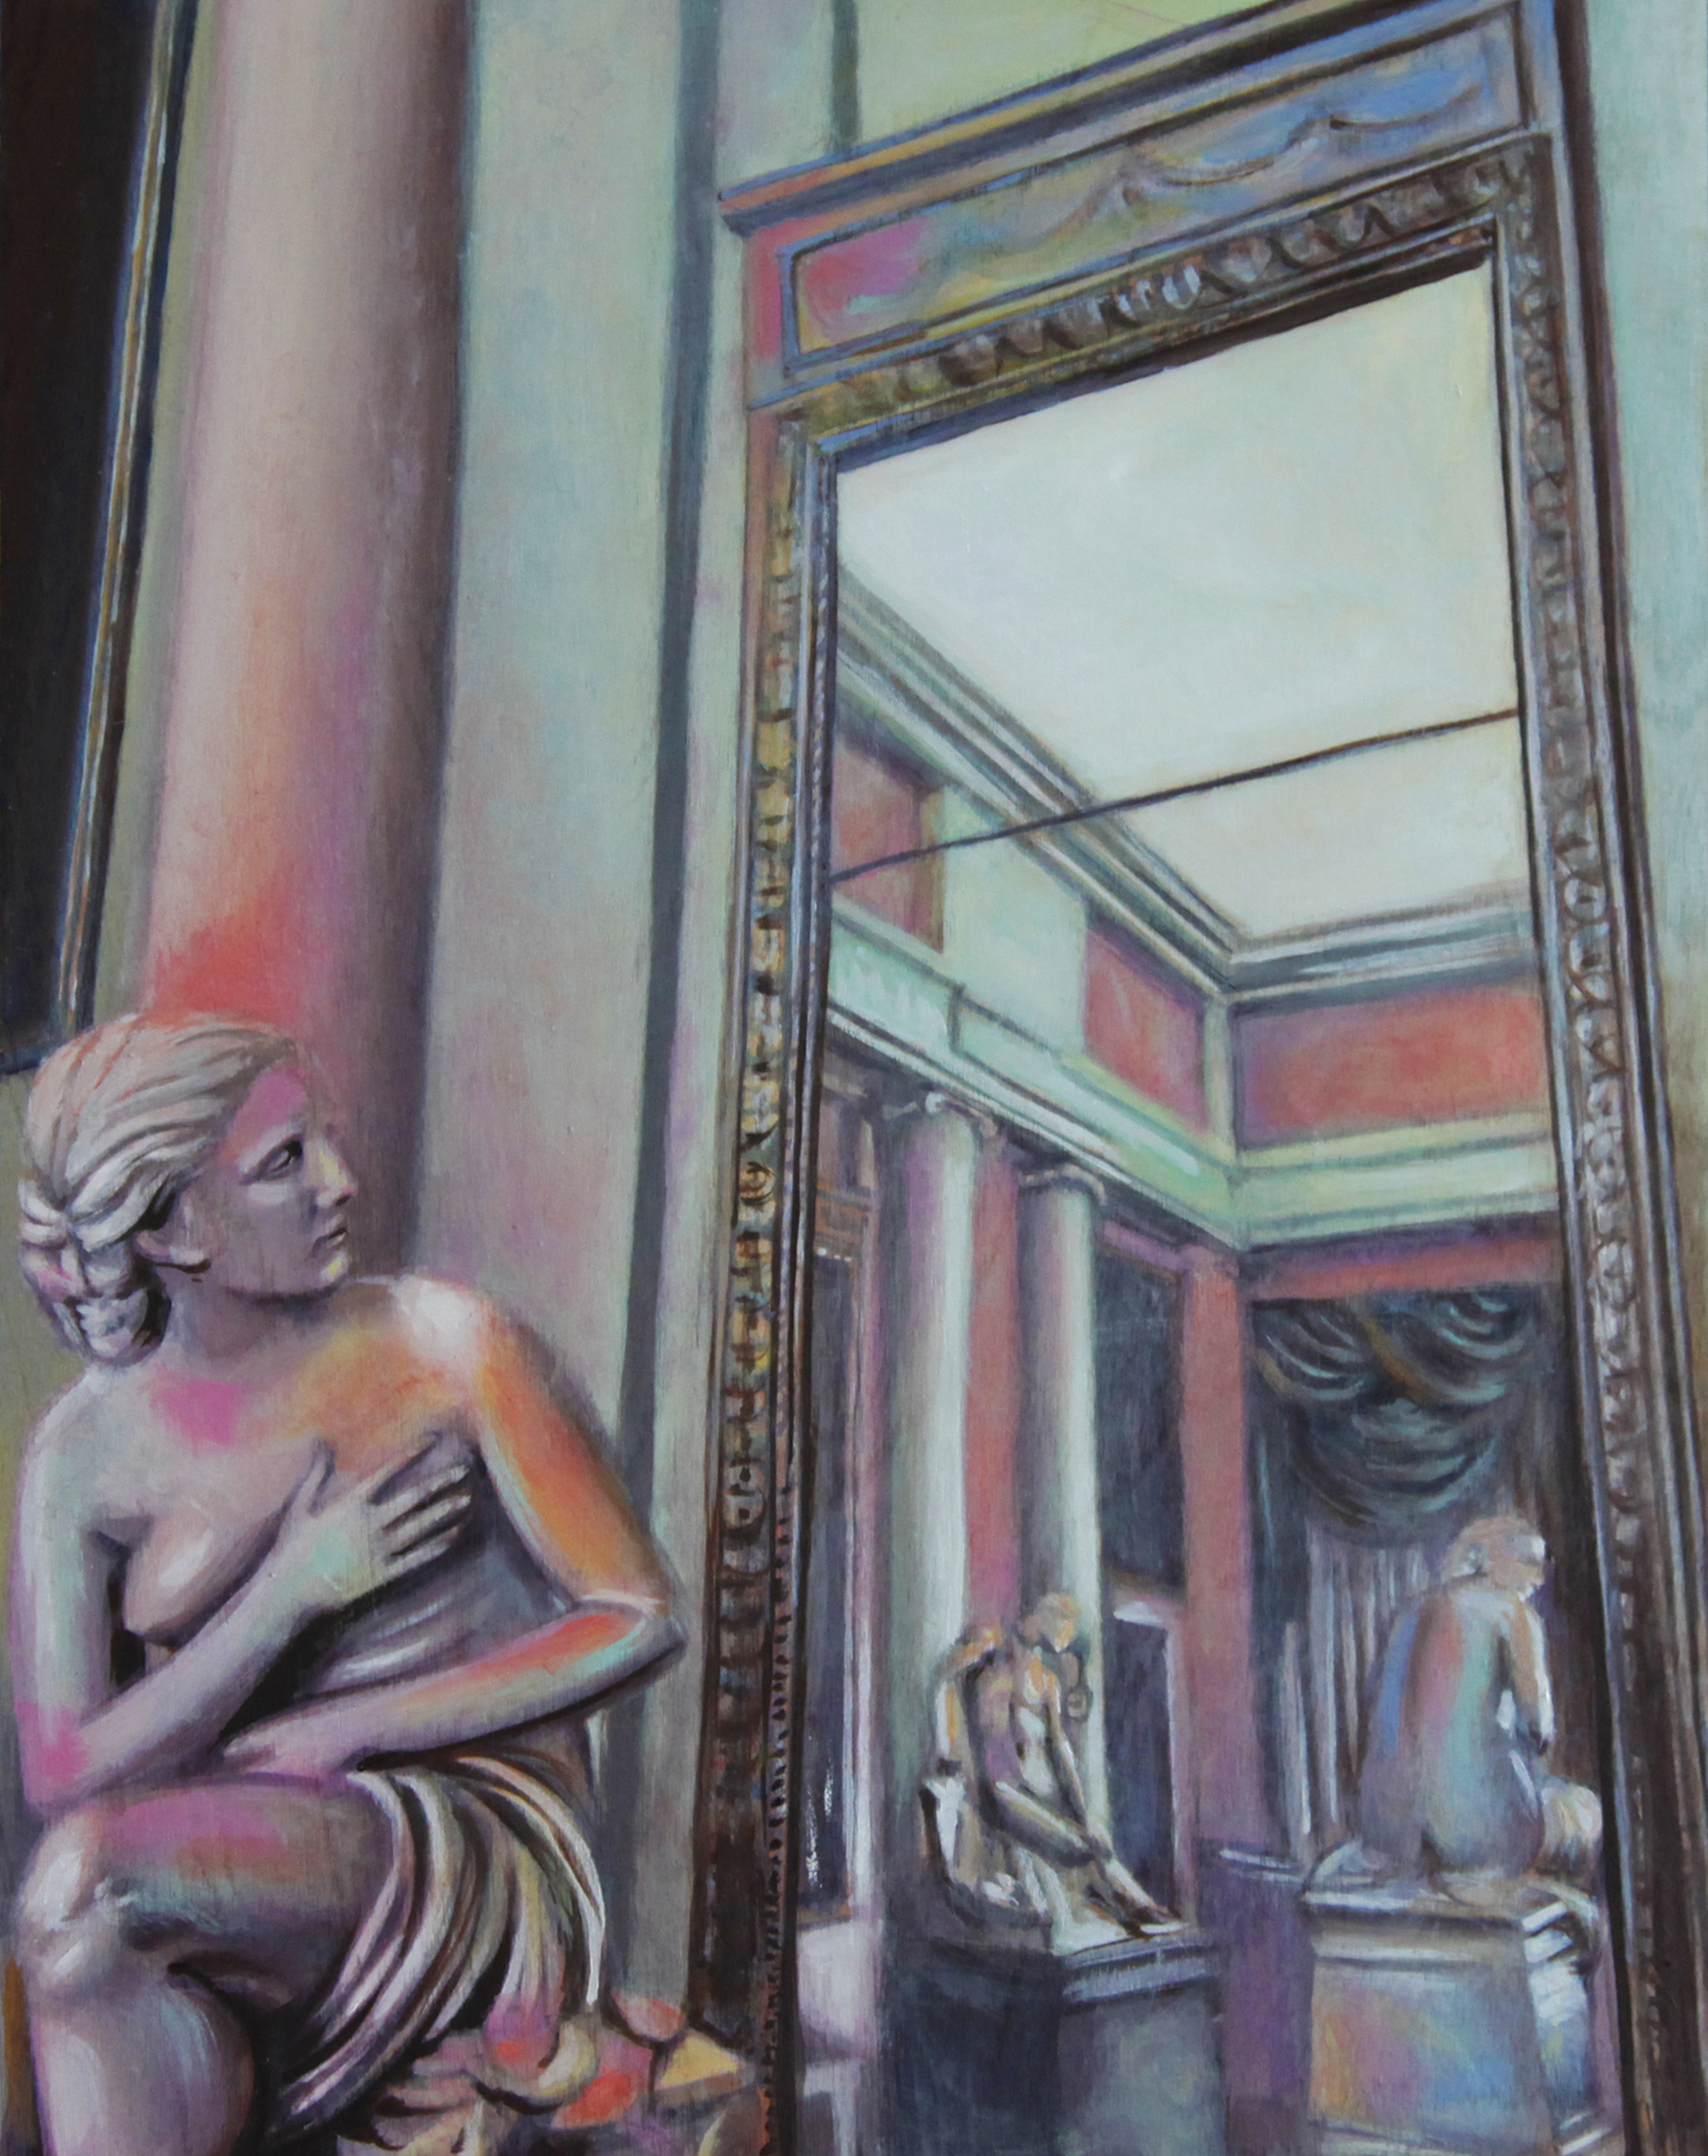 Woman in the Mirror, 2016, Oil on wood panel